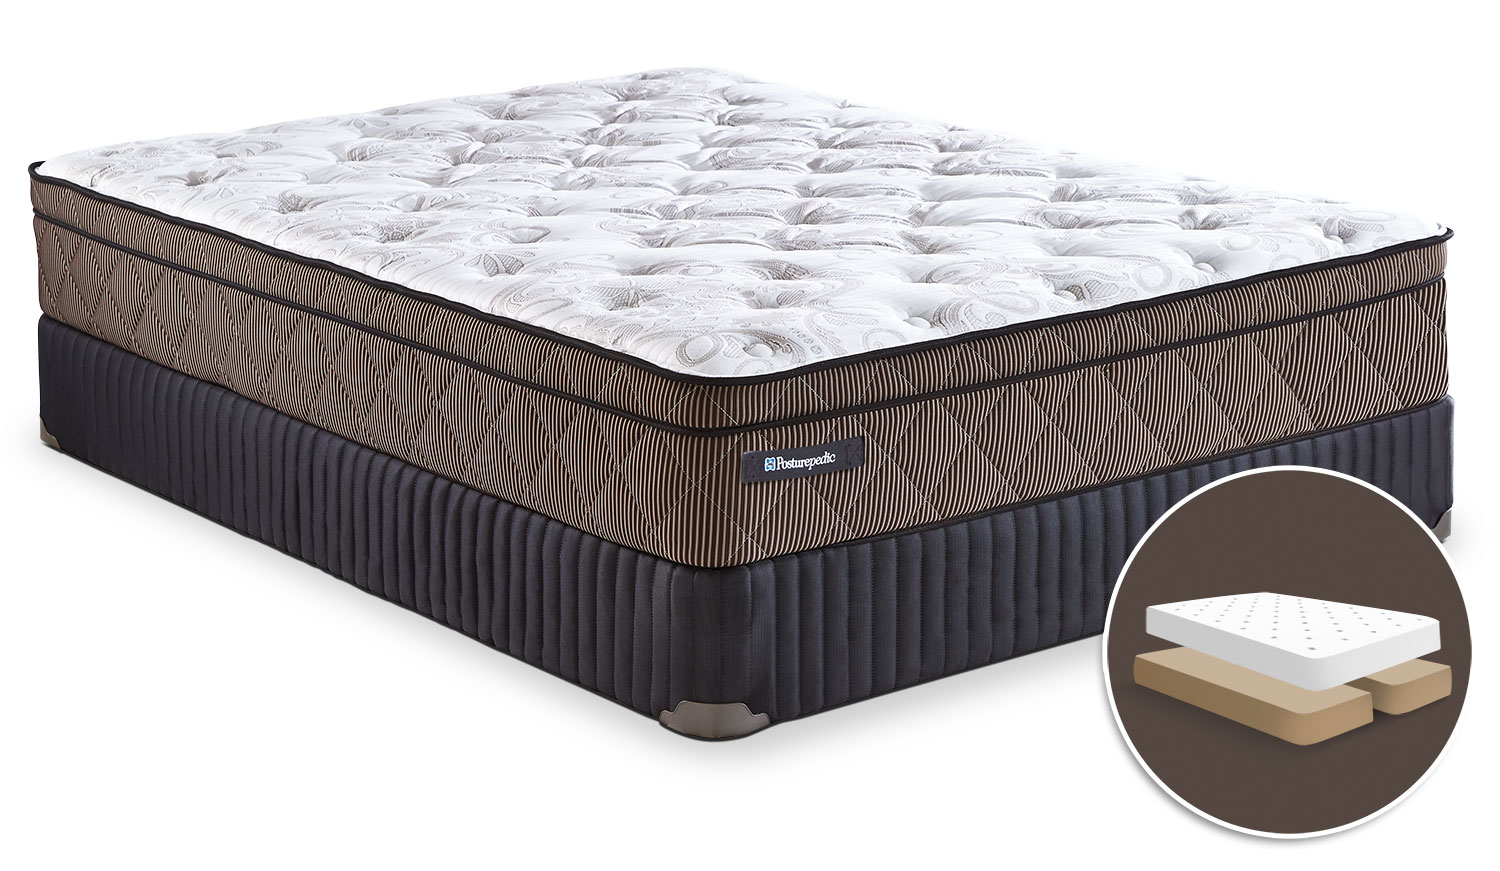 Mattresses and Bedding - Sealy Posturepedic Crown Jewel Riverfront Euro-Top Queen Mattress and Split Boxspring Set